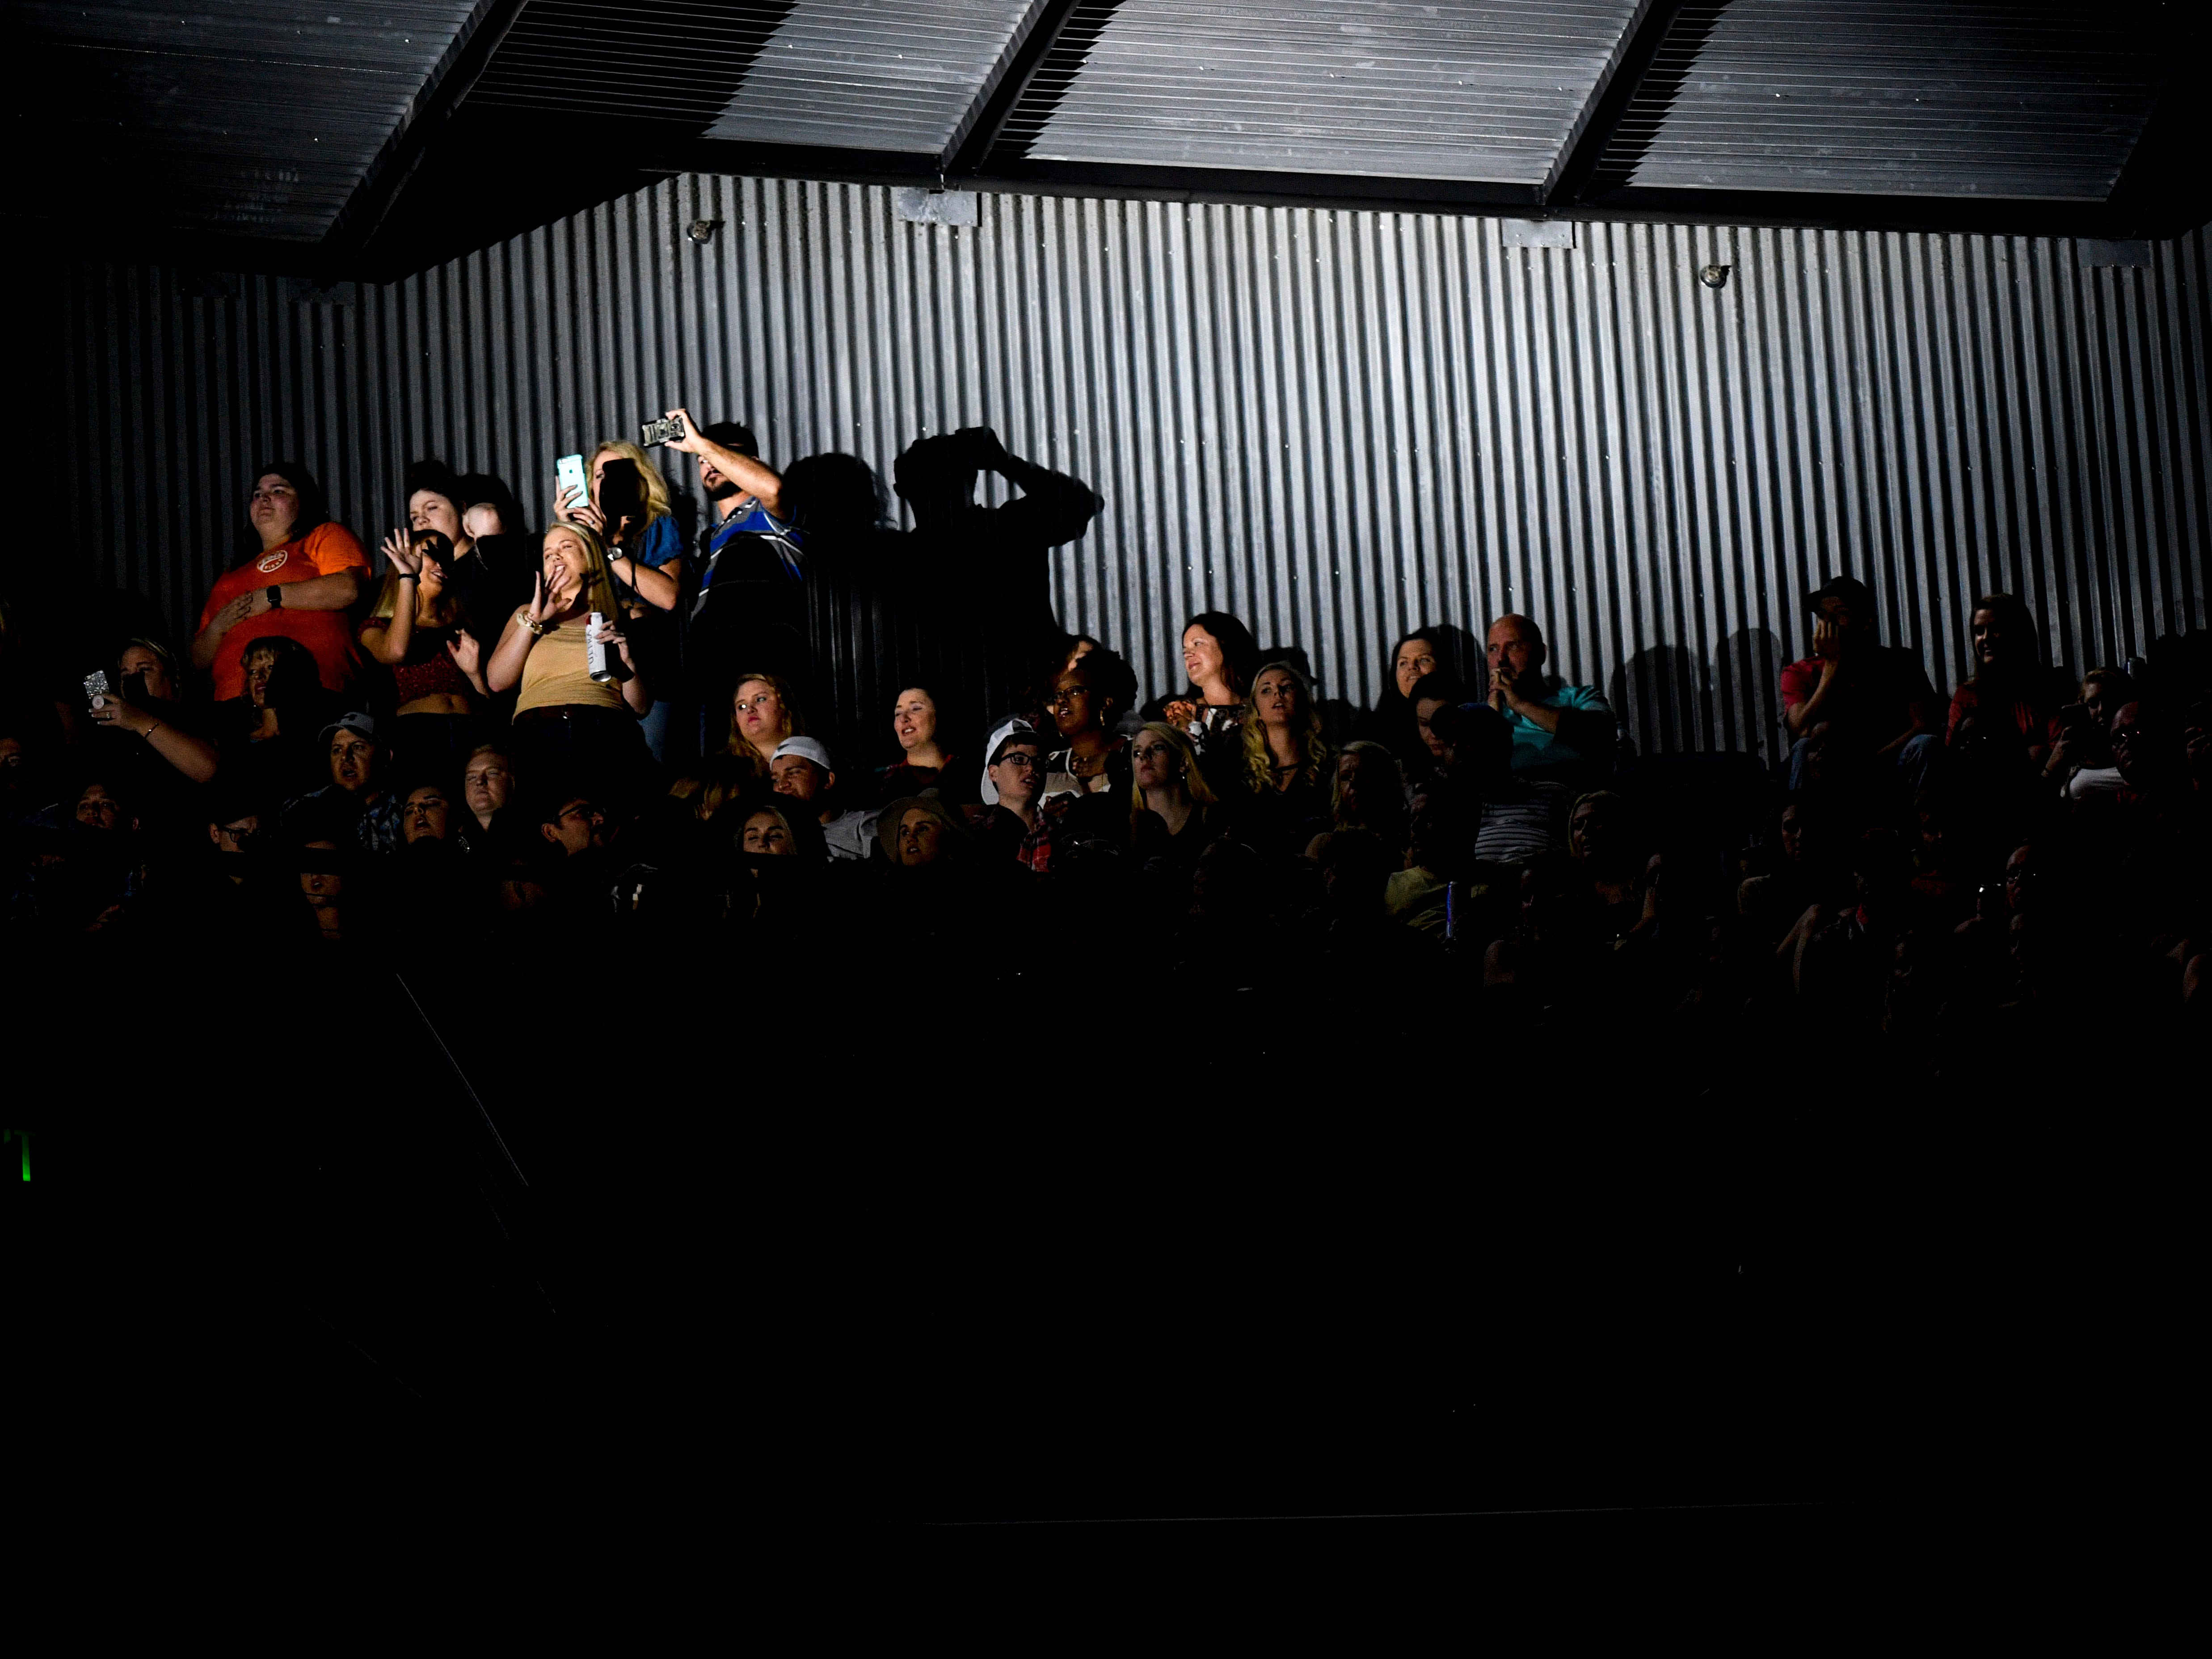 Fans perched high in the stadium seating dance and watch as Kane Brown performs as an opening act for Chris Young at Bridgestone Arena in Nashville, Tenn., Saturday, Sept. 22, 2018.